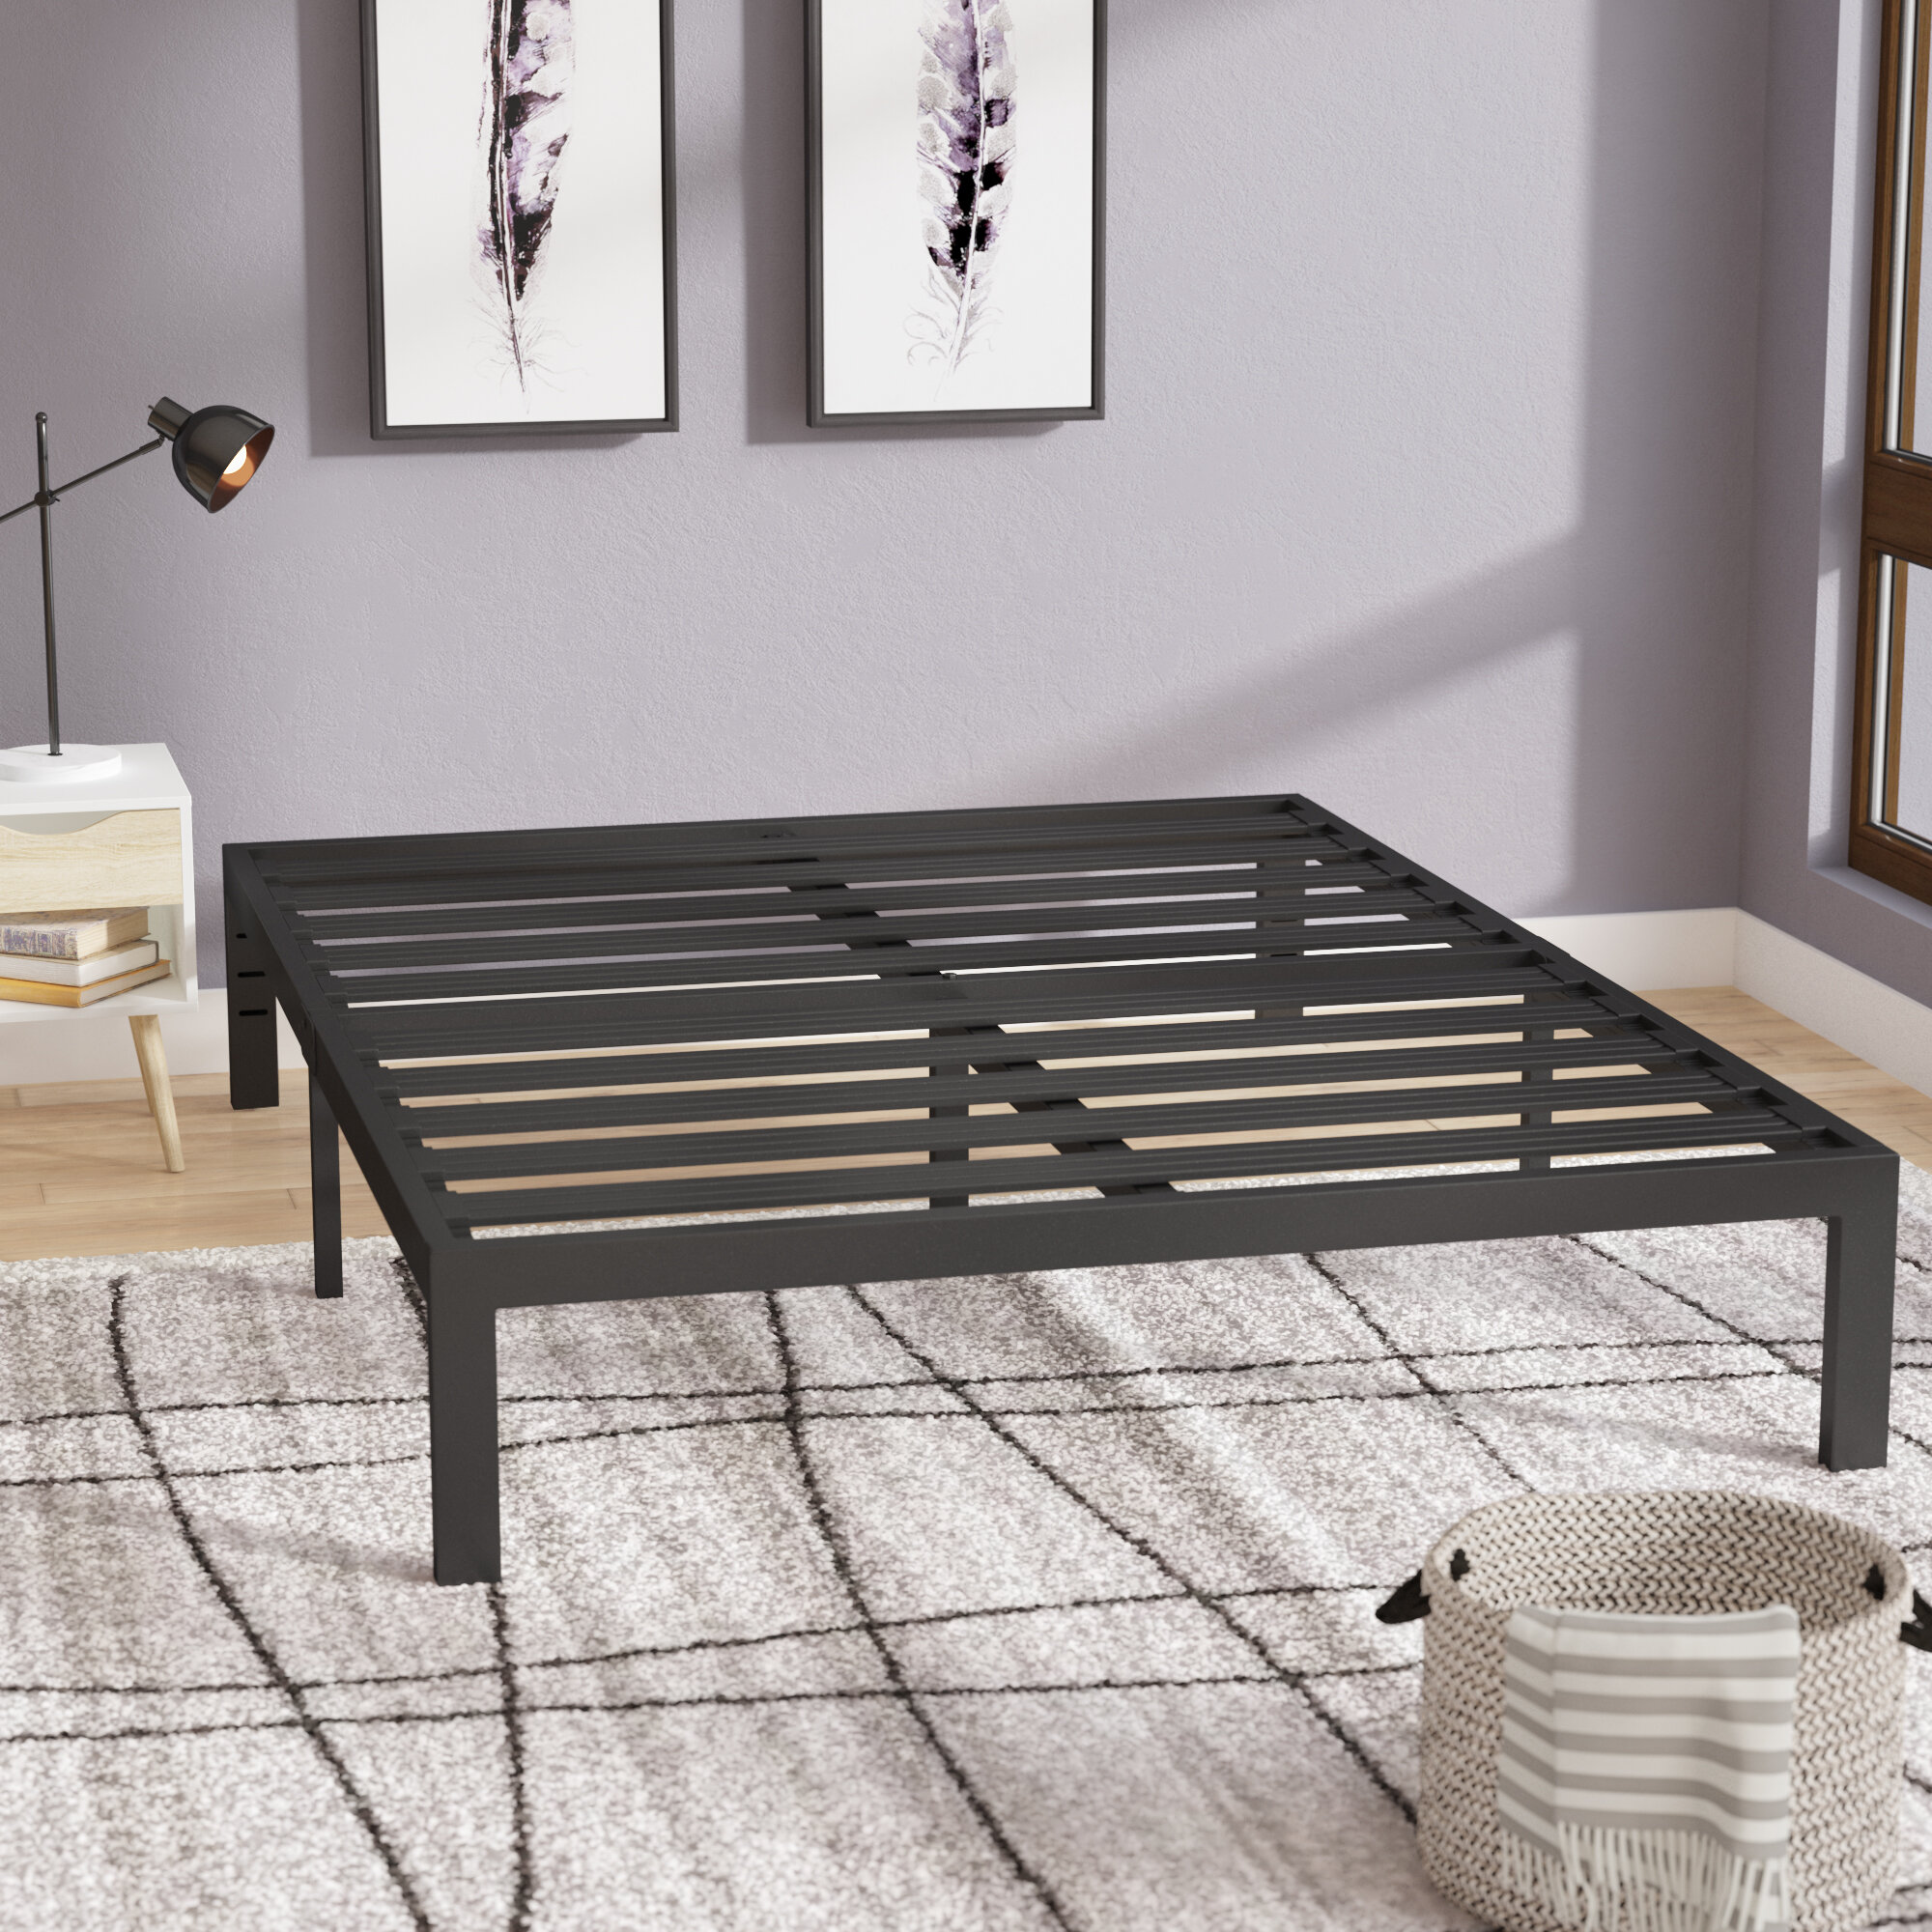 metal reviews home bed wayfair platform alwyn pdx furniture